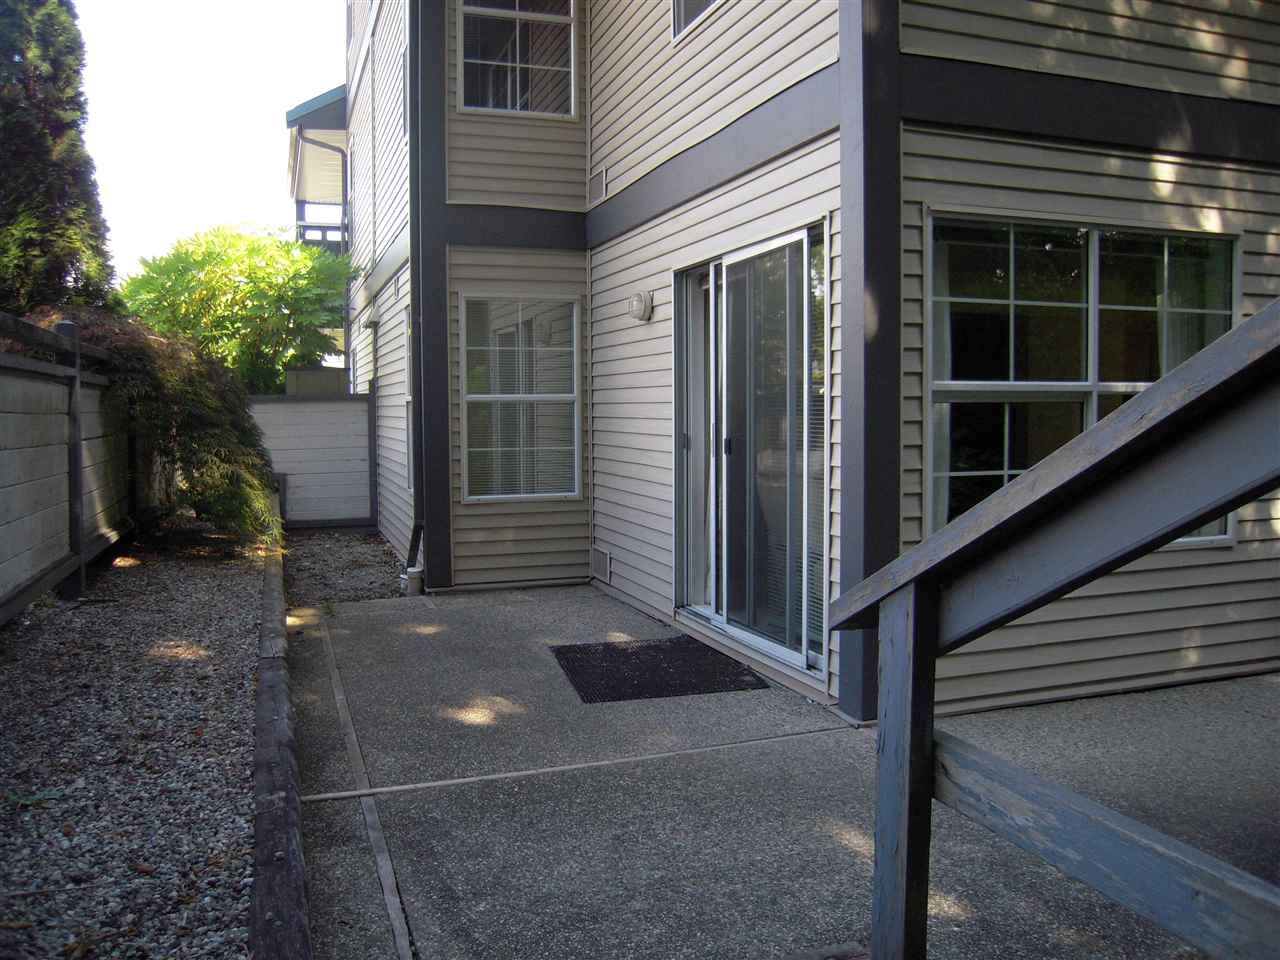 Photo 3: Photos: 43 689 PARK Road in Gibsons: Gibsons & Area Condo for sale (Sunshine Coast)  : MLS® # R2081854